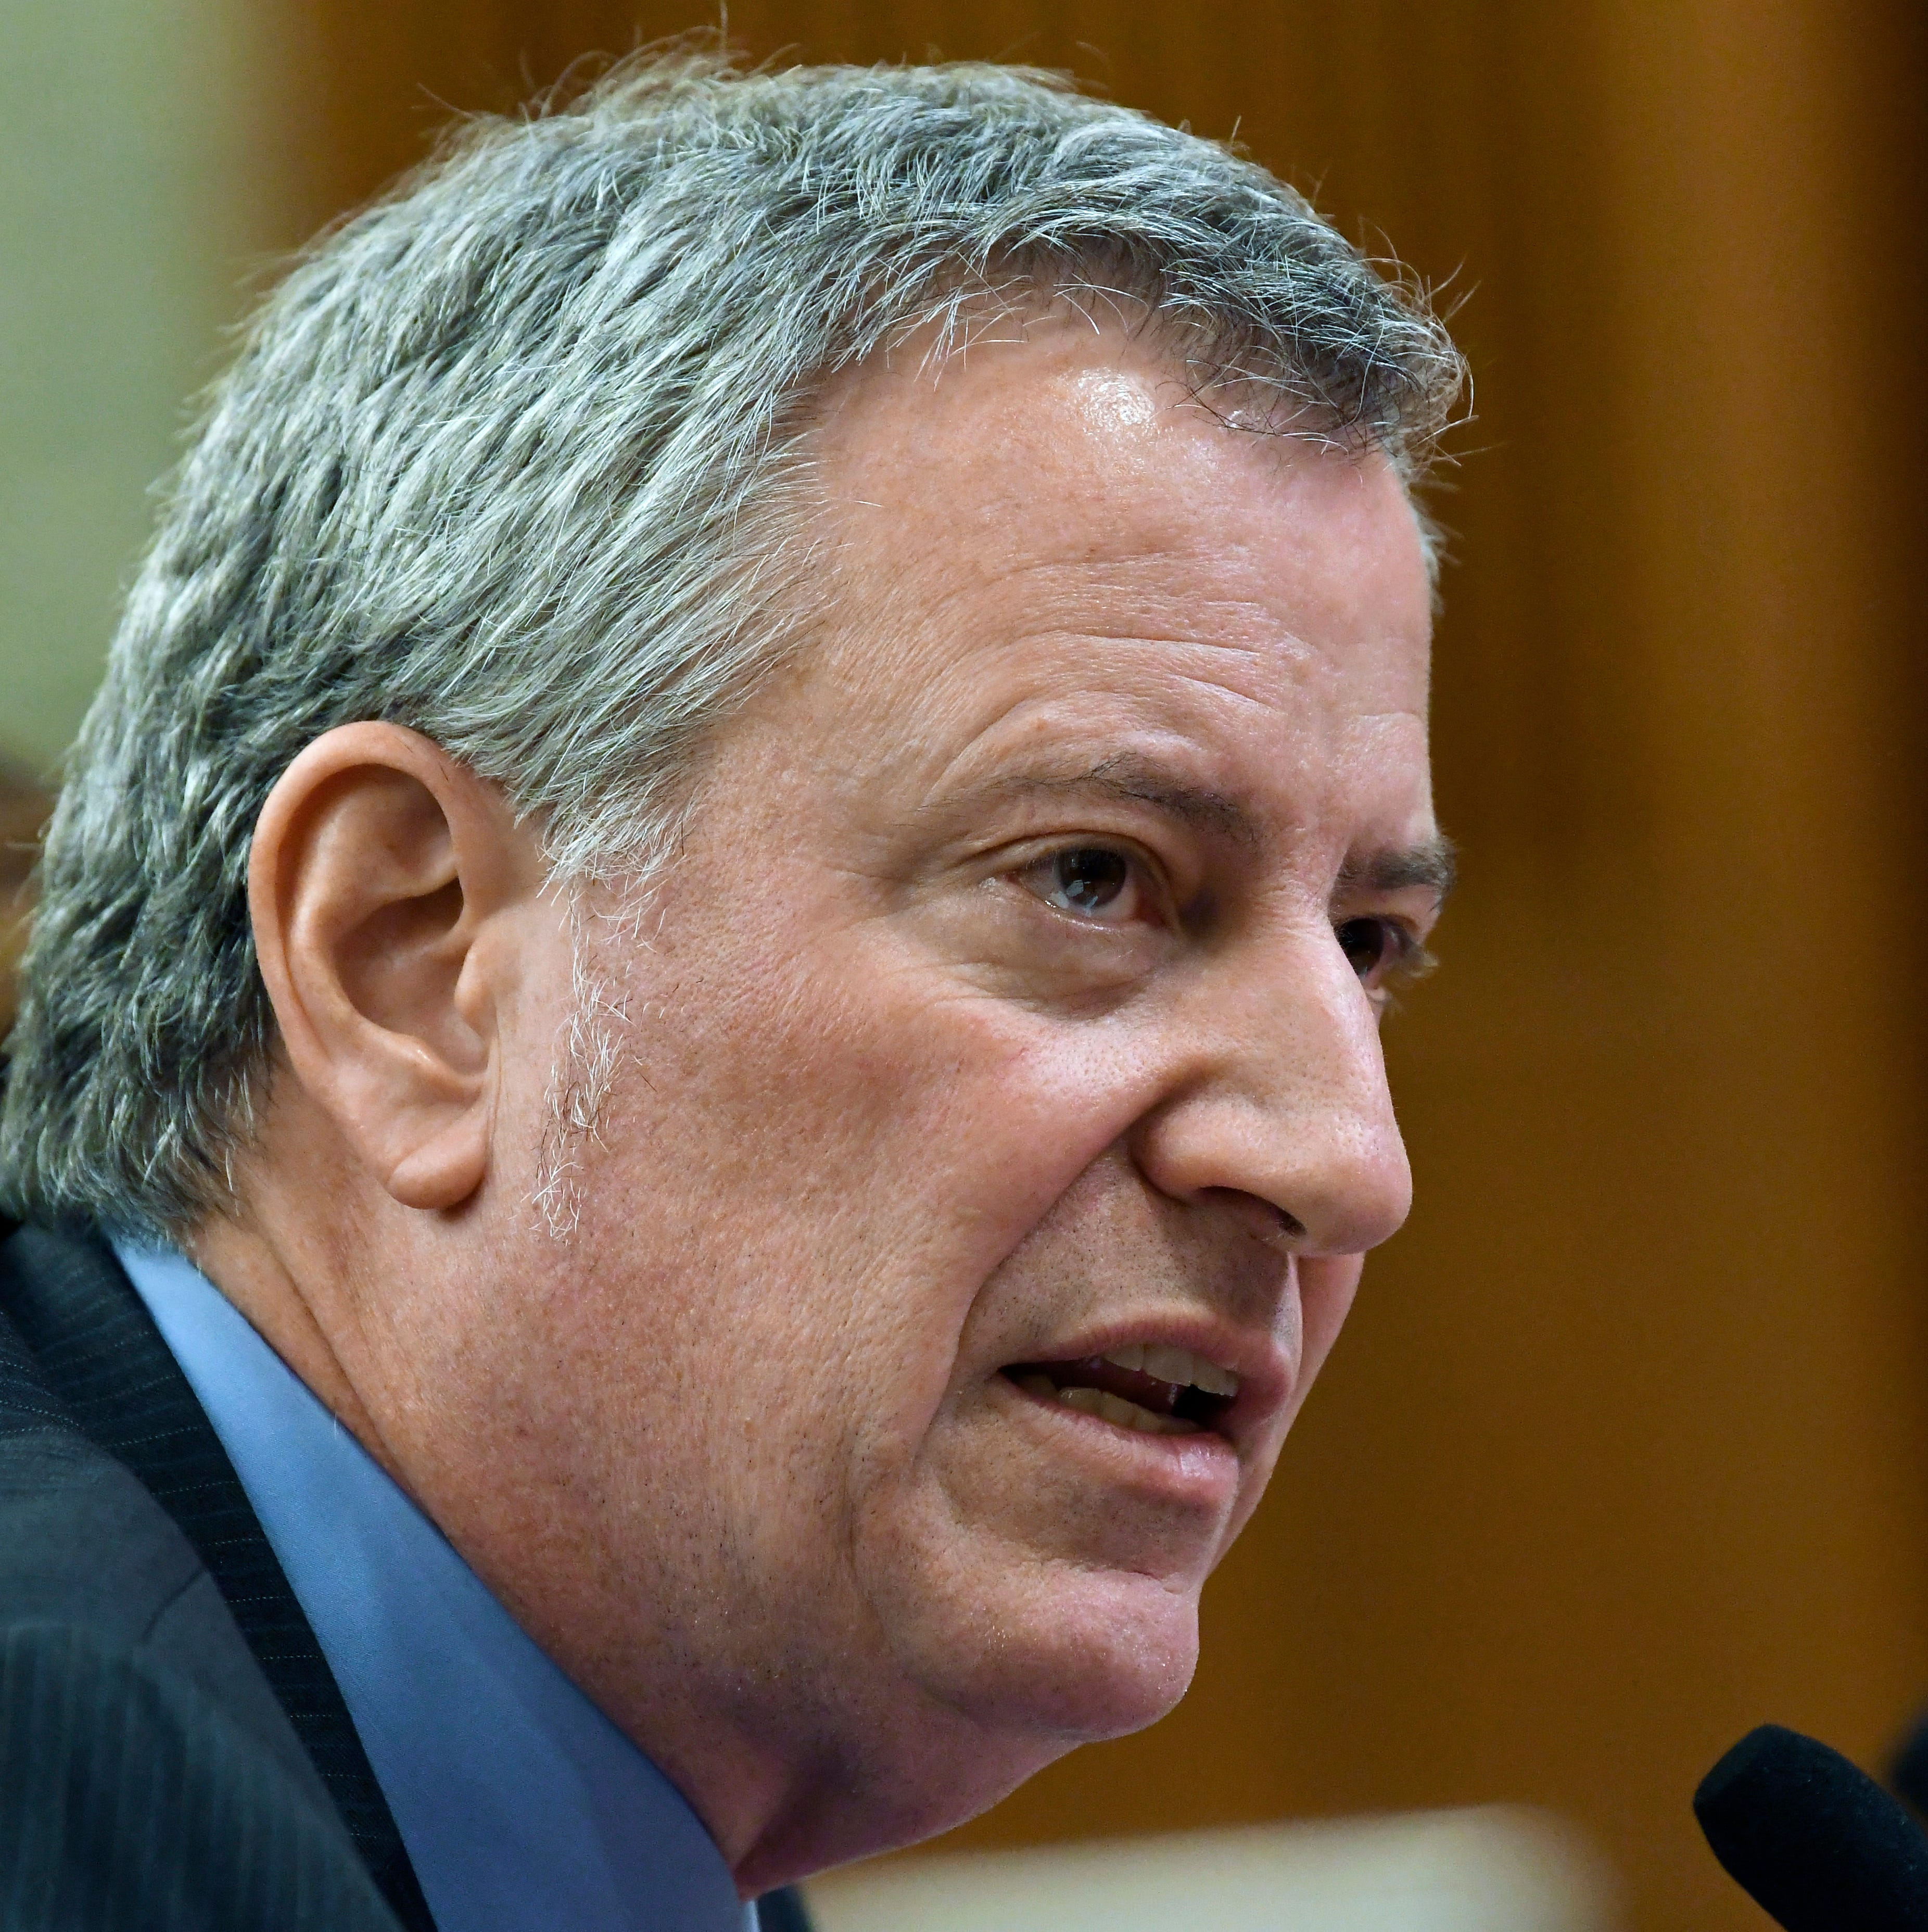 New York City Mayor Bill de Blasio enters president's race: 'I know how to take' on Trump